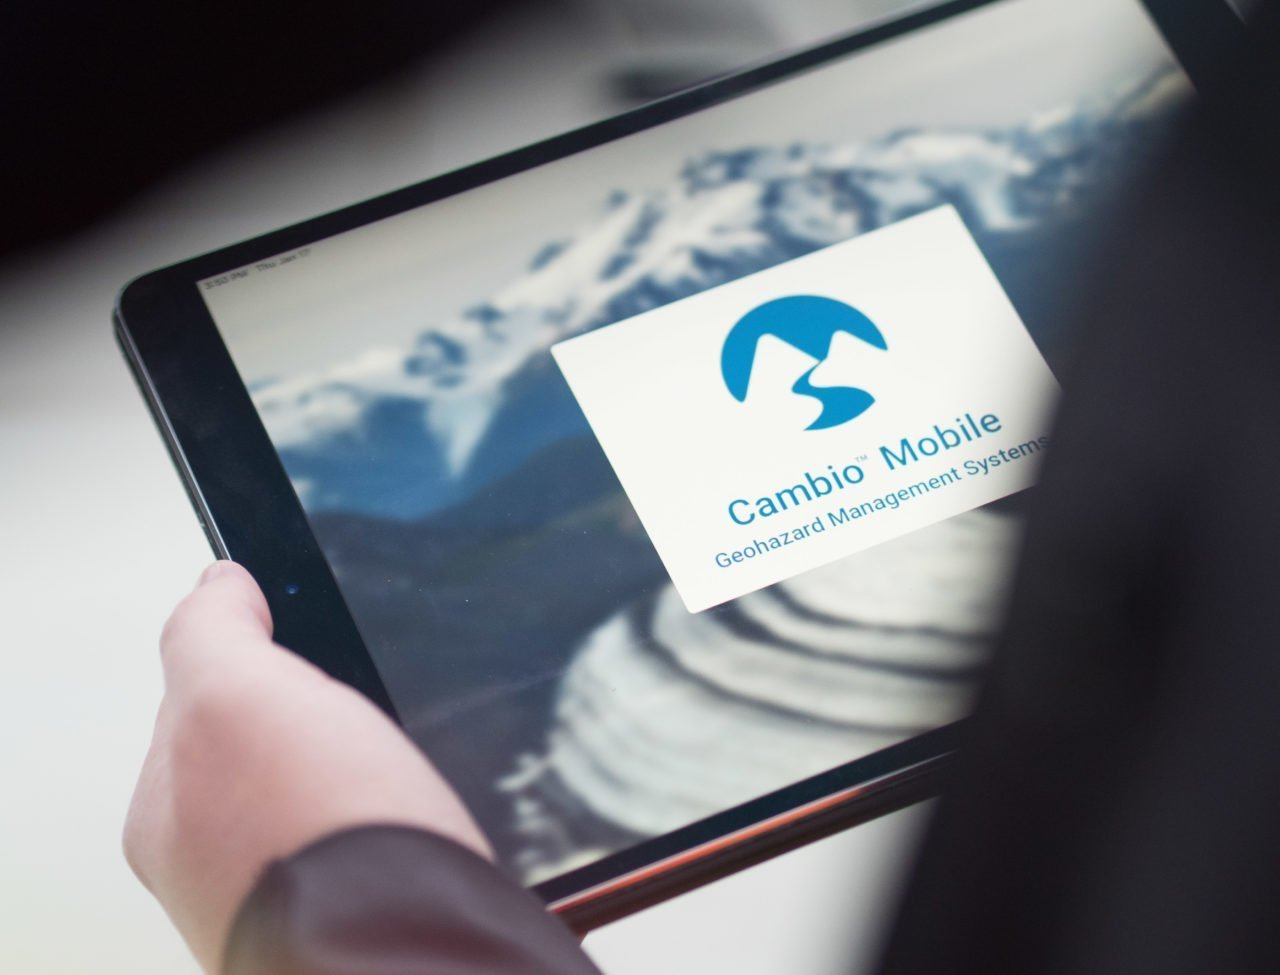 Person using Cambio Mobile application on an iPad